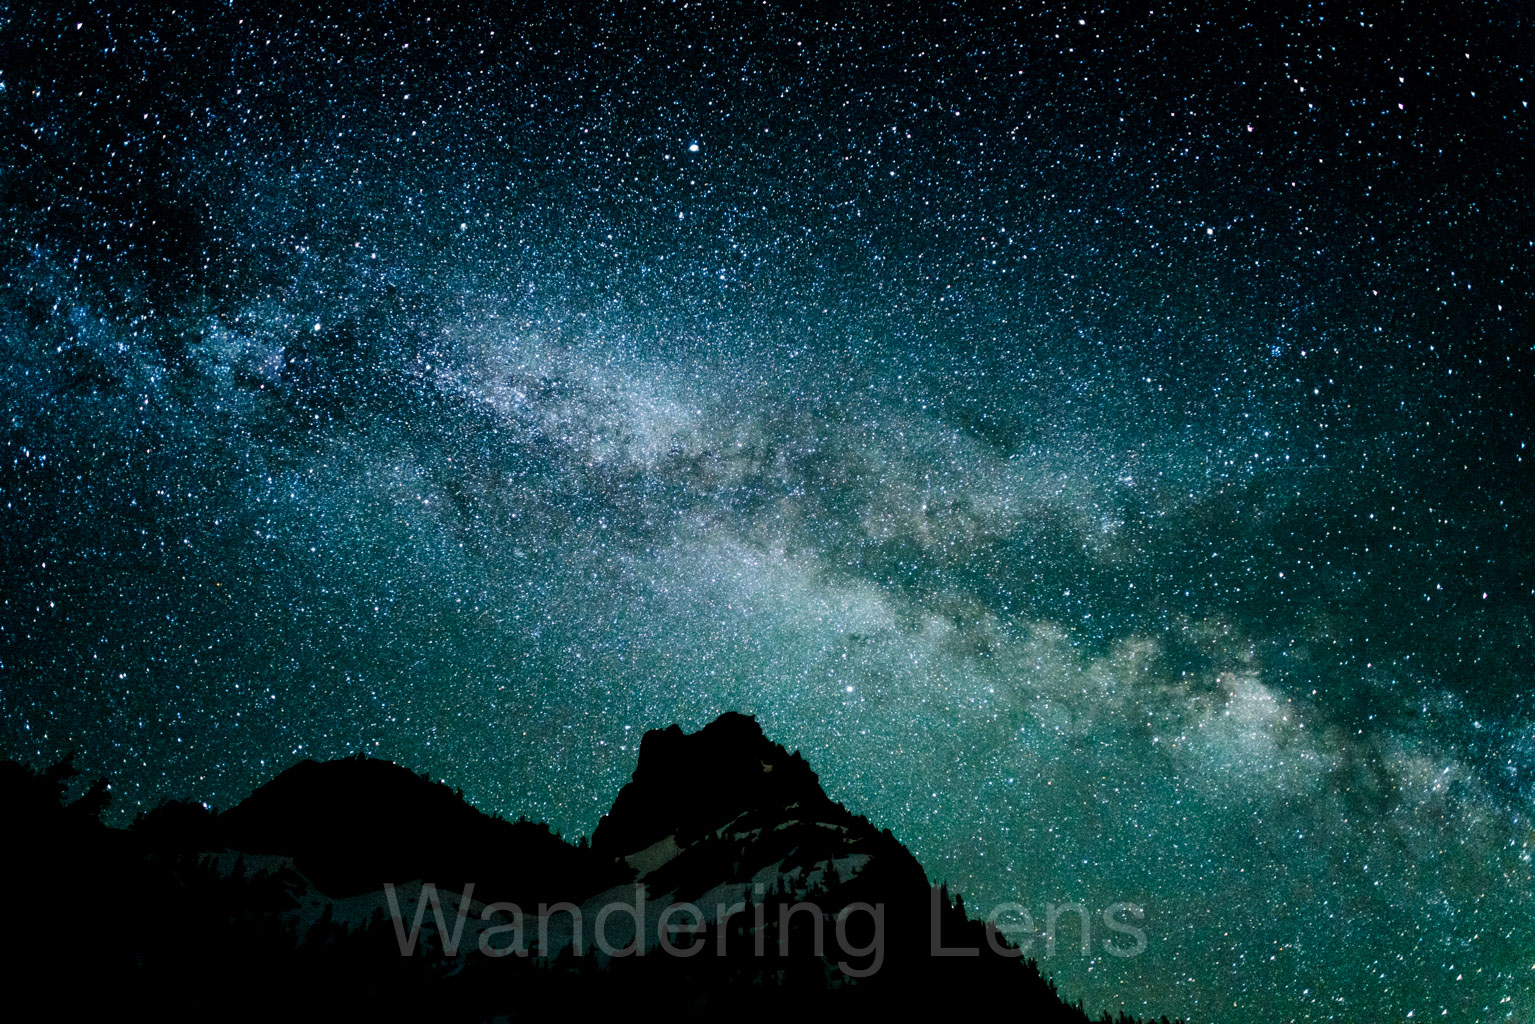 Cathedral Rock under the Milky Way